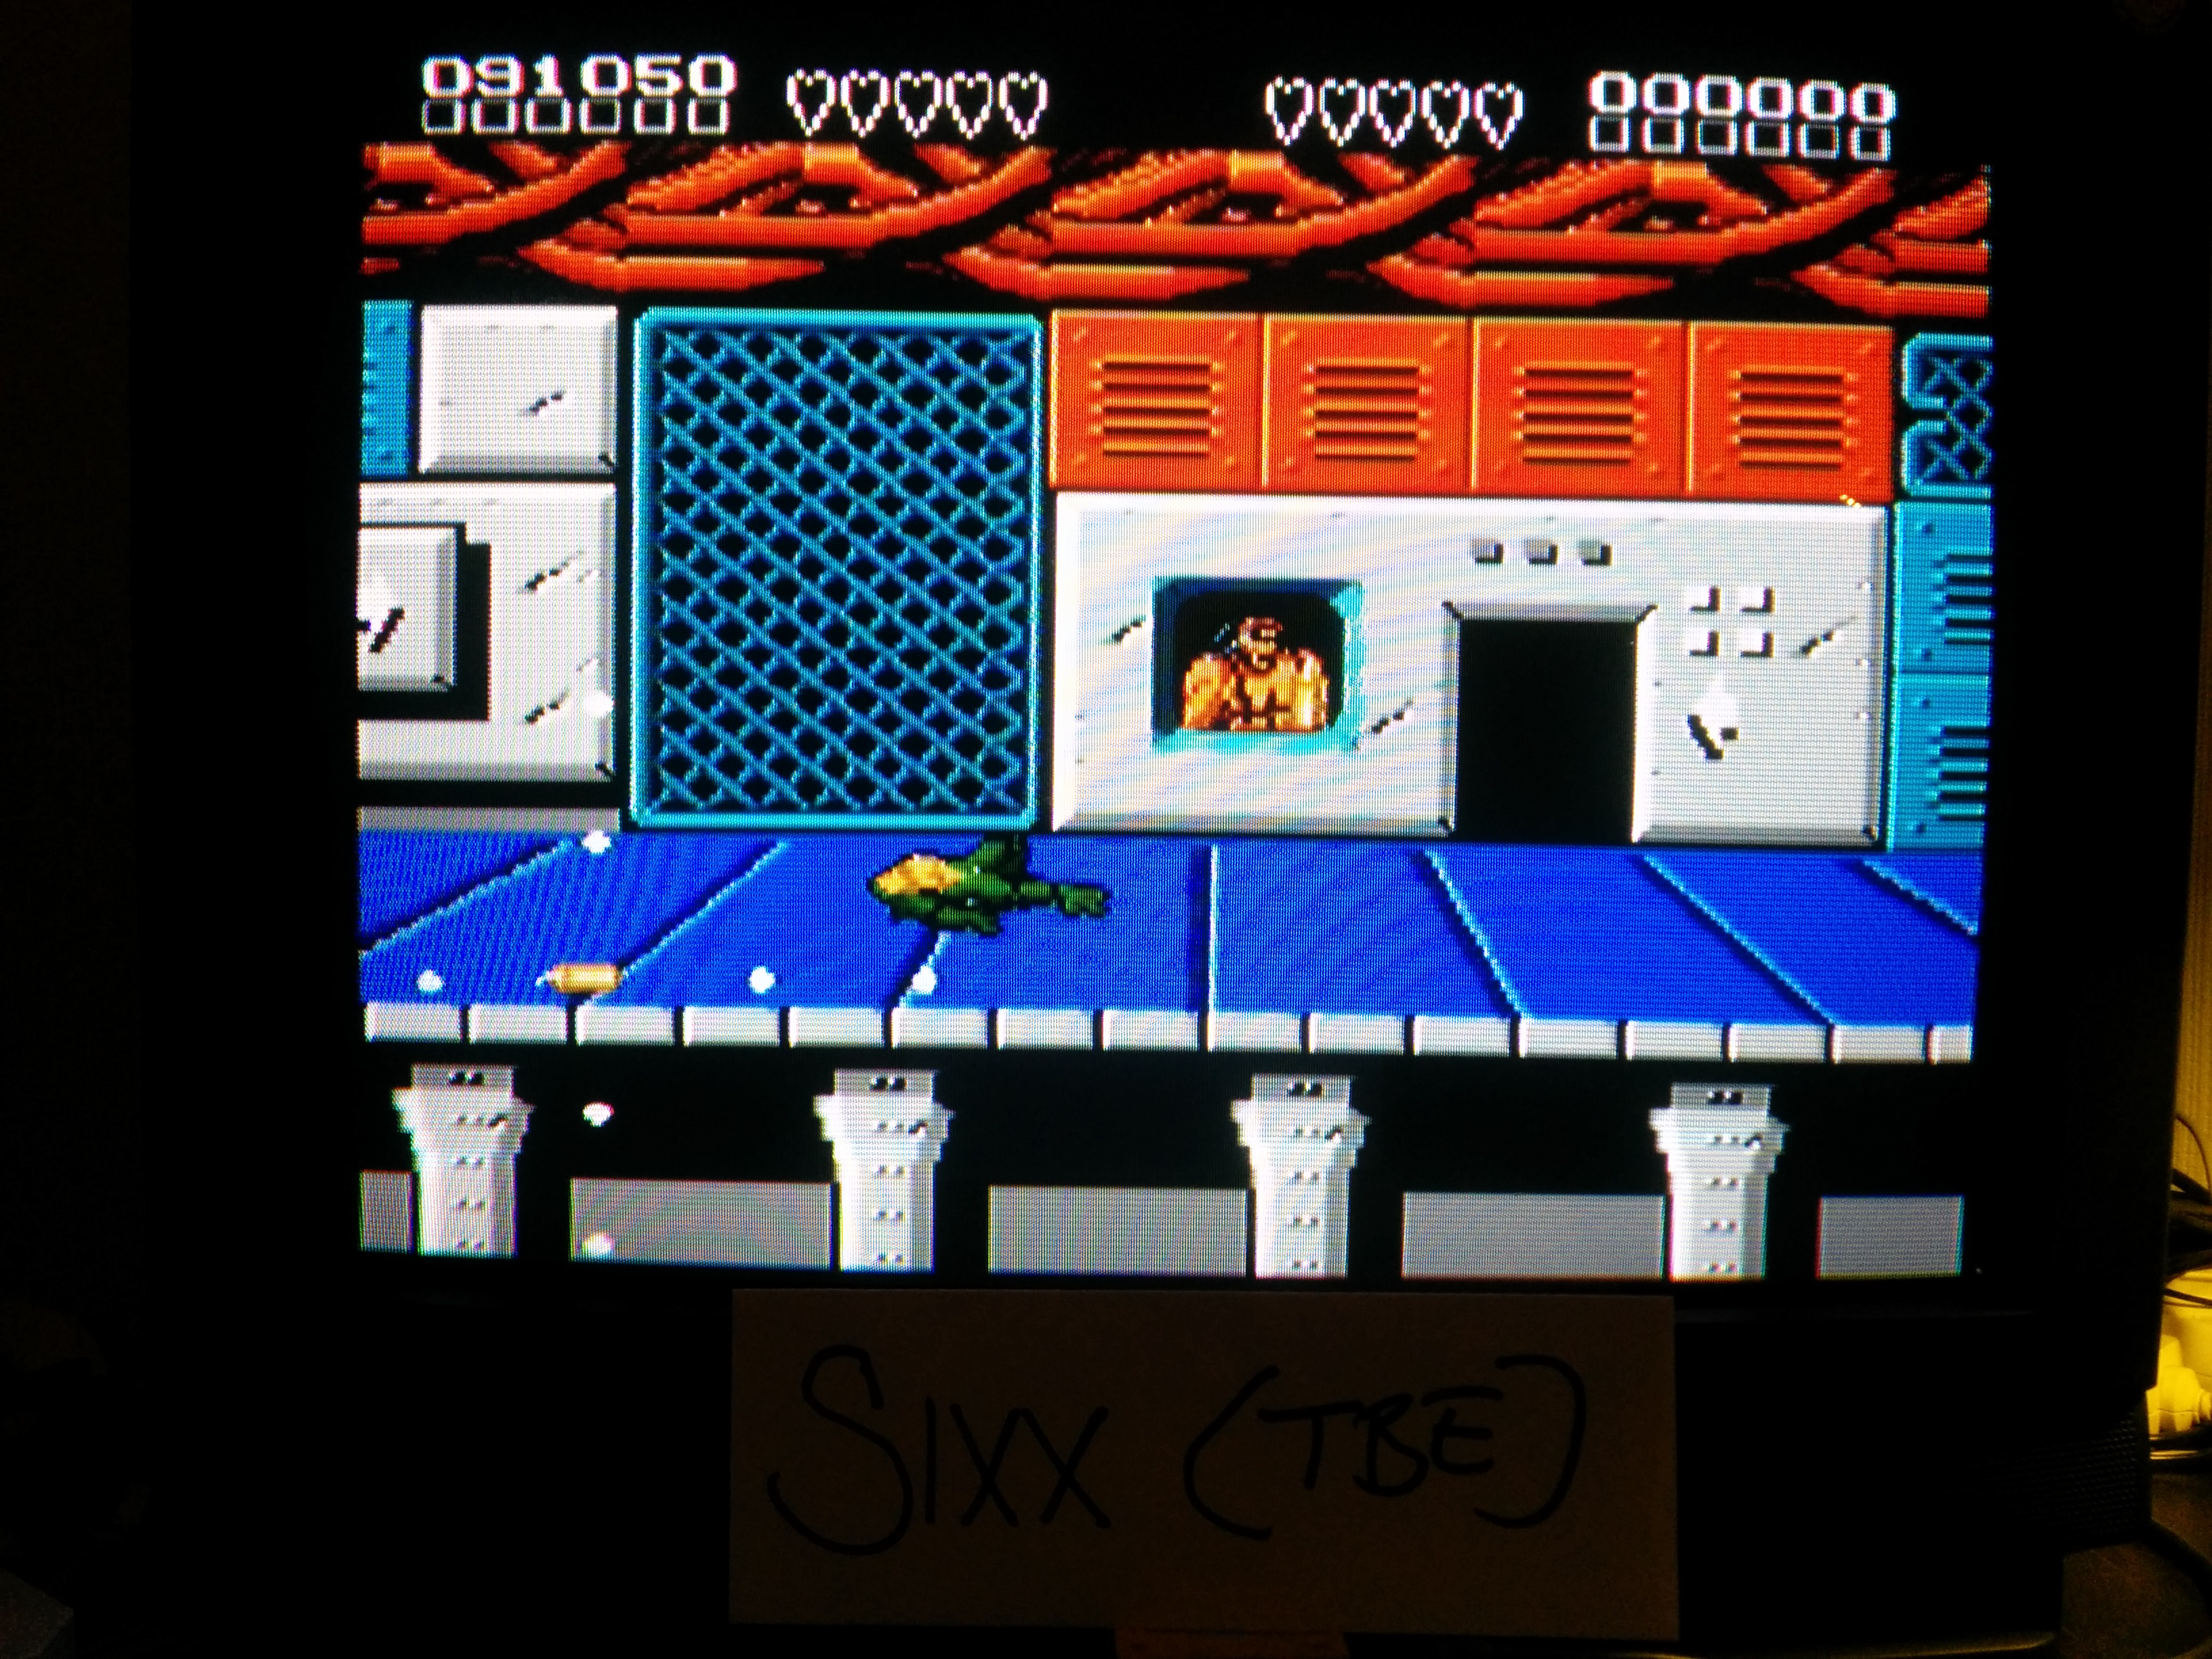 Sixx: Battletoads and Double Dragon: The Ultimate Team (NES/Famicom Emulated) 91,050 points on 2014-04-22 16:11:30